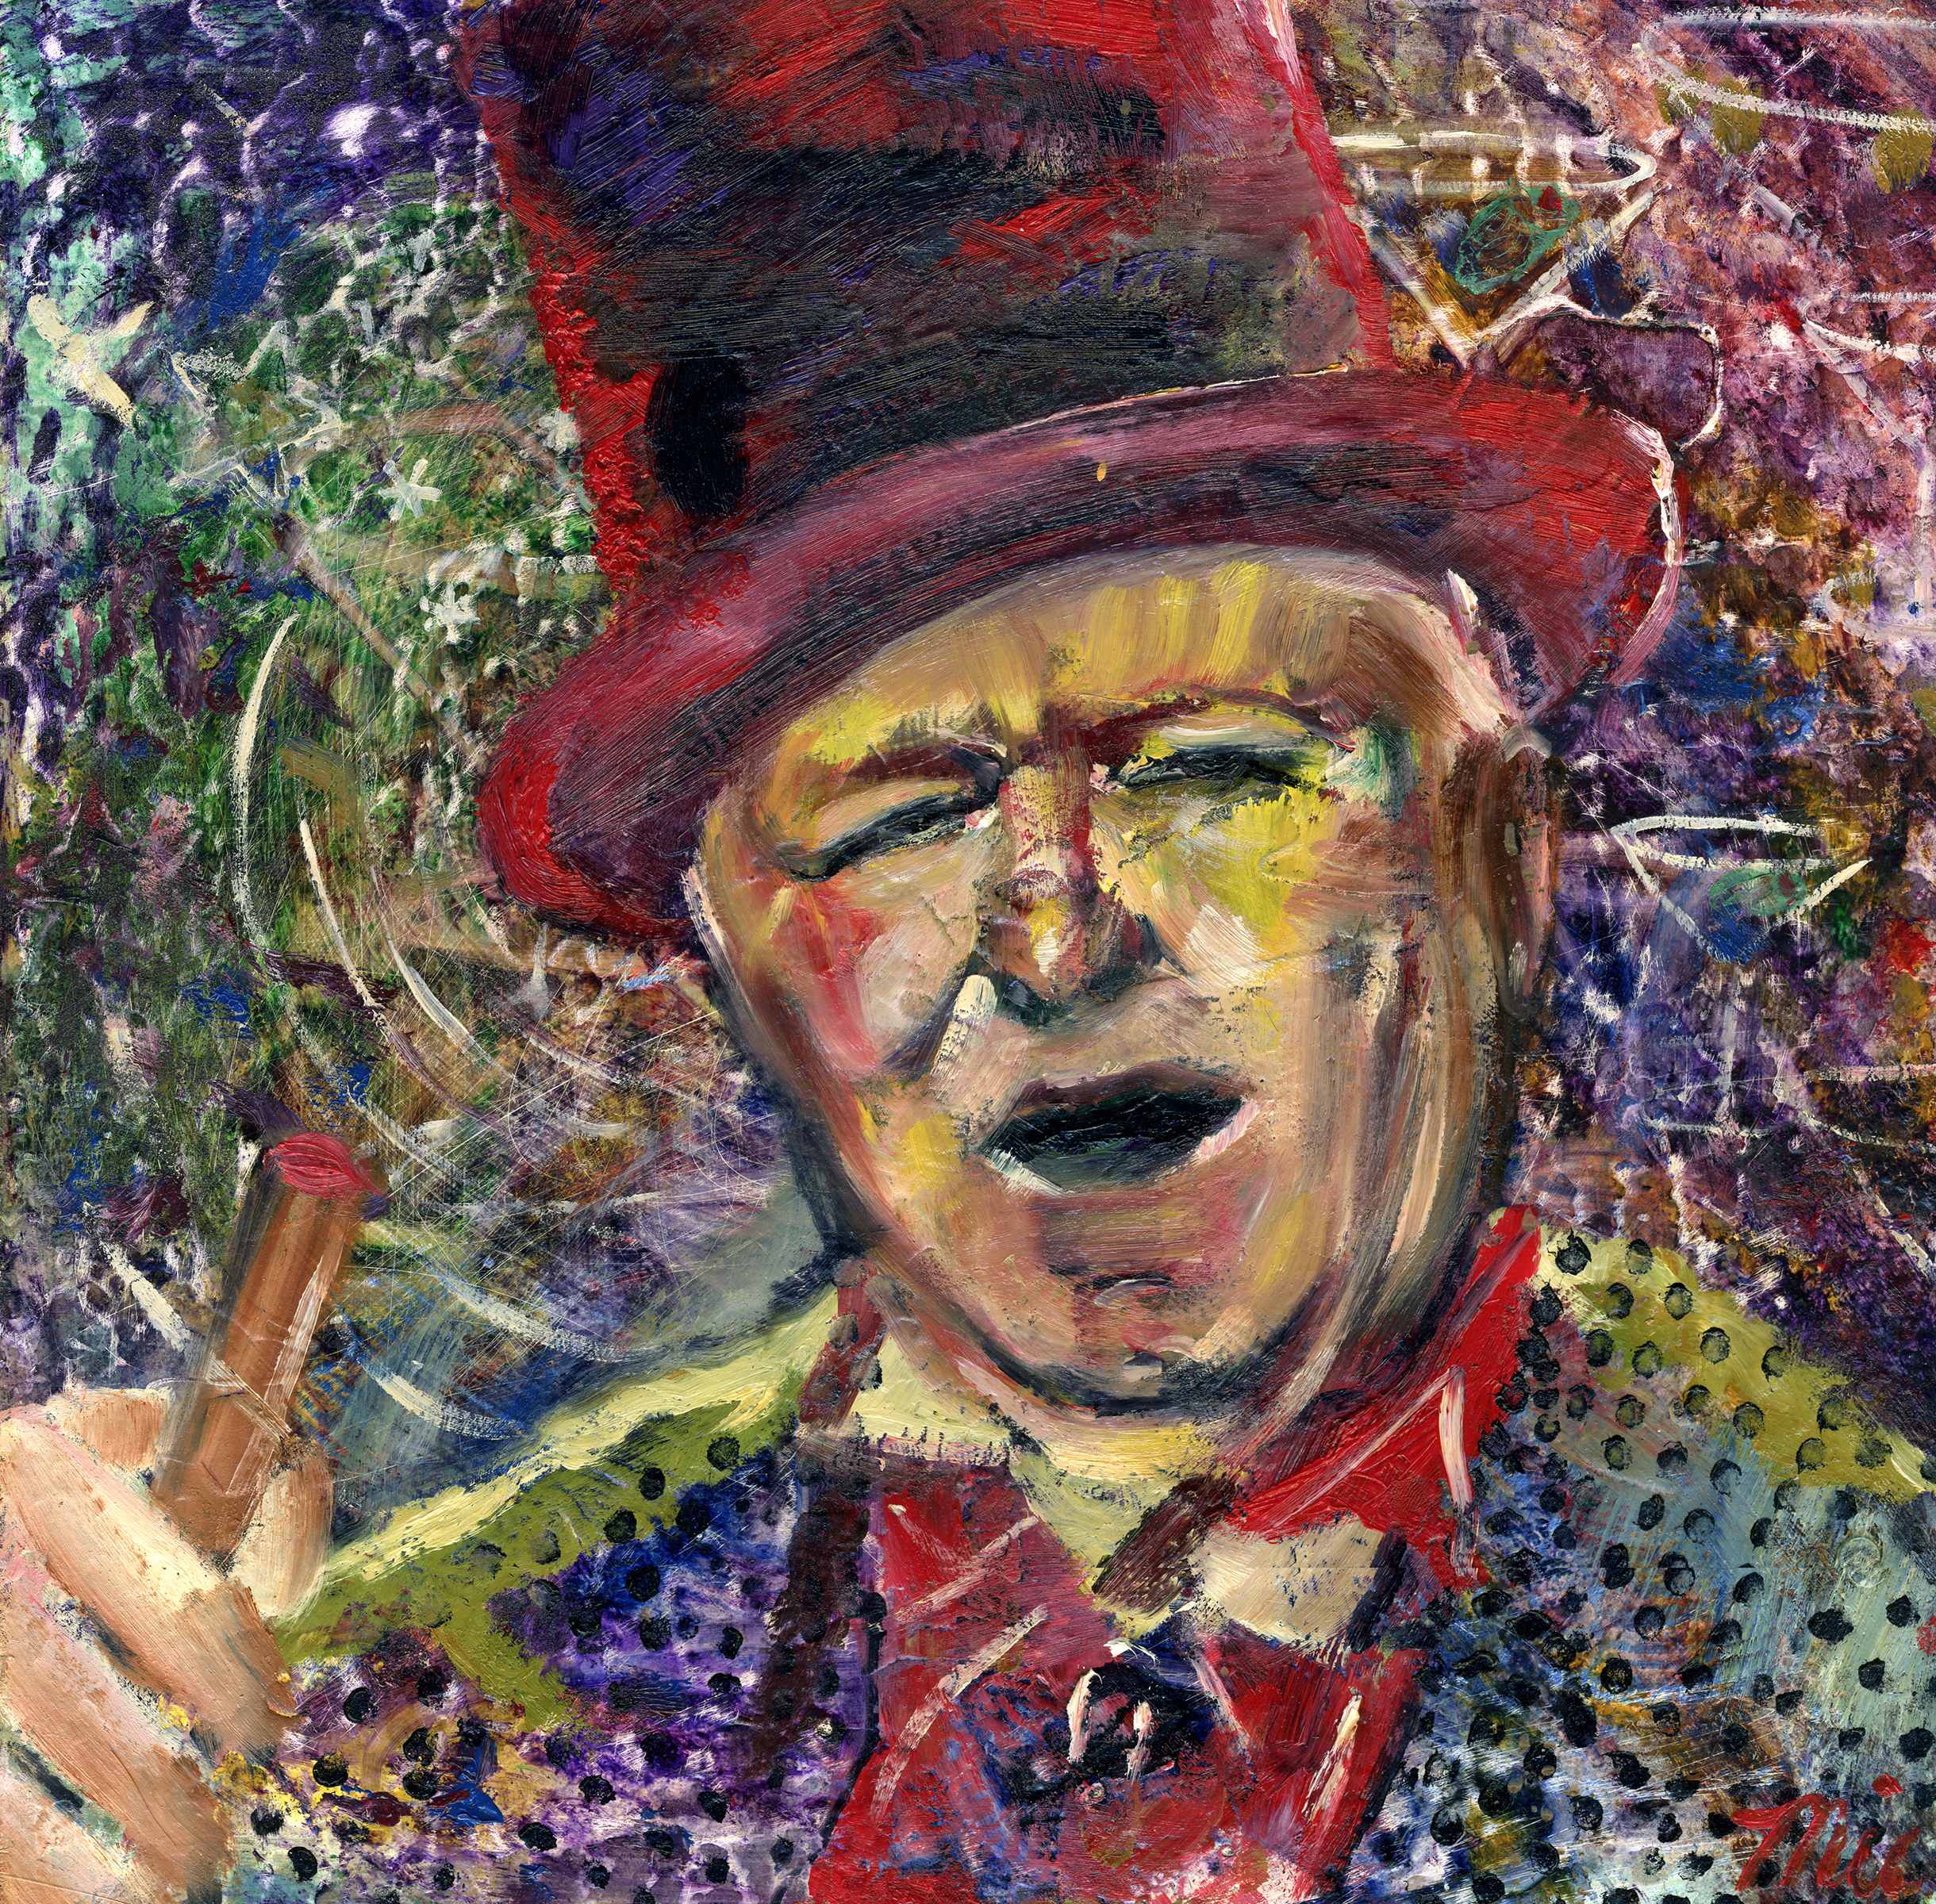 WC Fields Never ending hangover - Oilon on panel Private collection Dan SilverthornGiclee Limited Edition and canvas prints are available. Please visit the prints gallery.